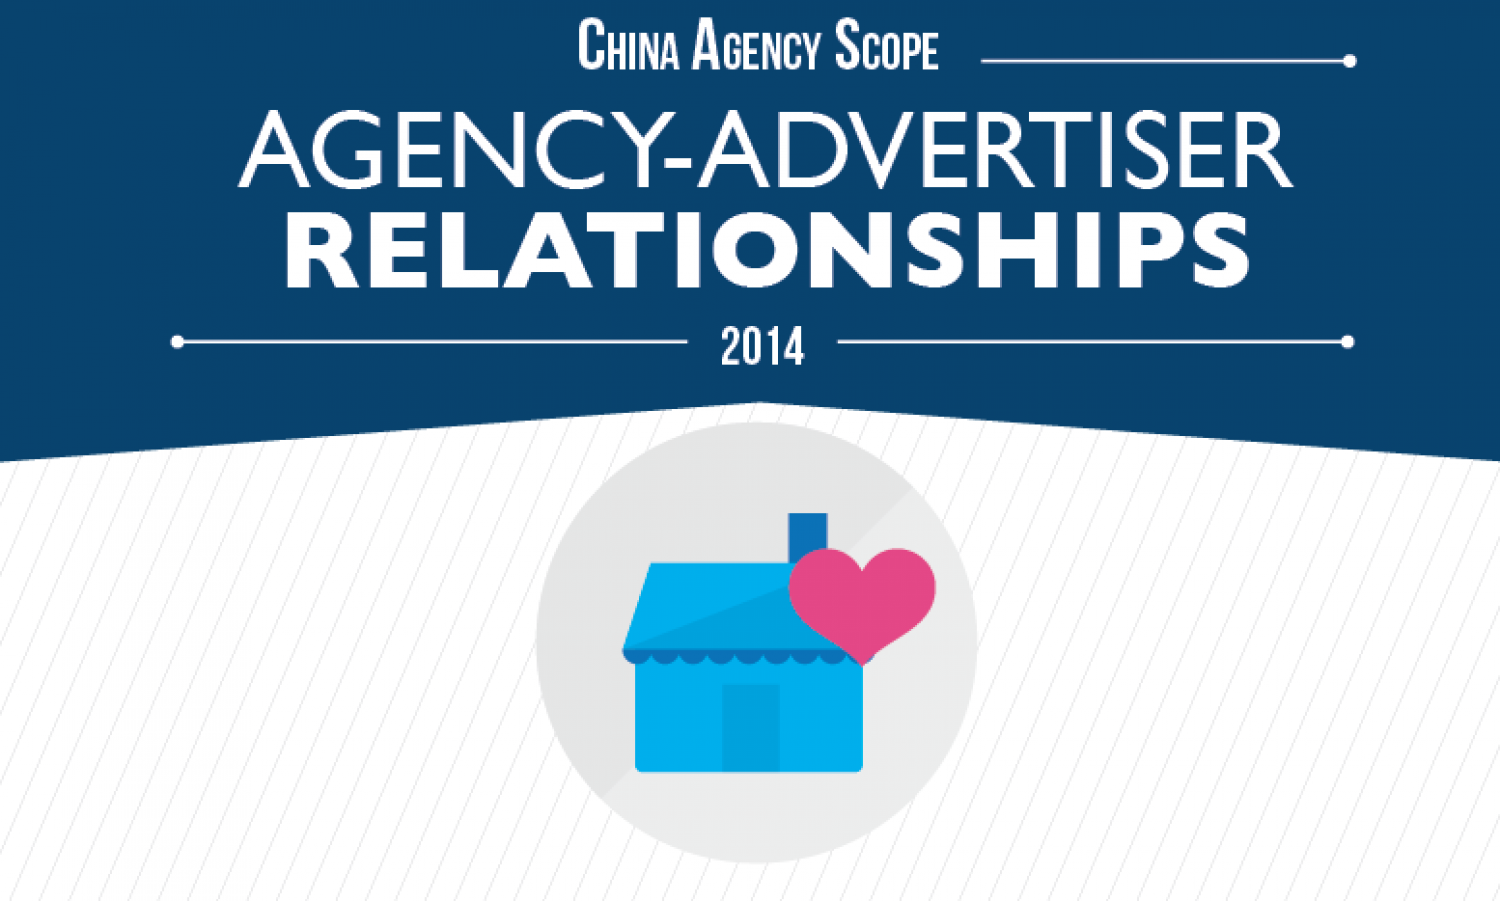 Agency-Advertiser Relationships Infographic